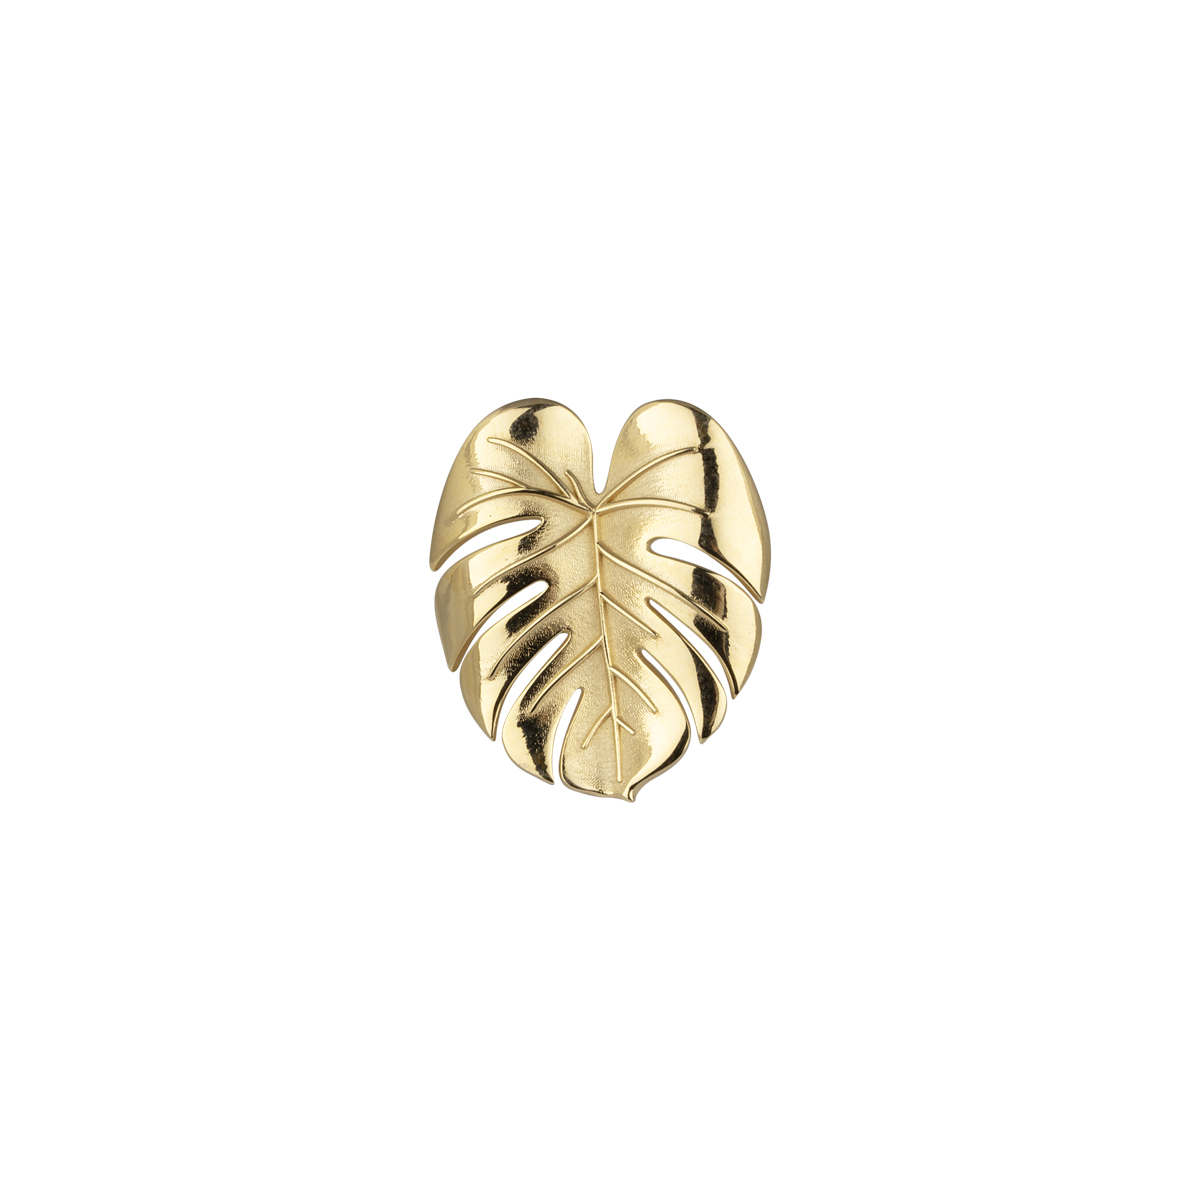 PALM LEAF RING GOLD in the group RINGS at EMMA ISRAELSSON (ring093)